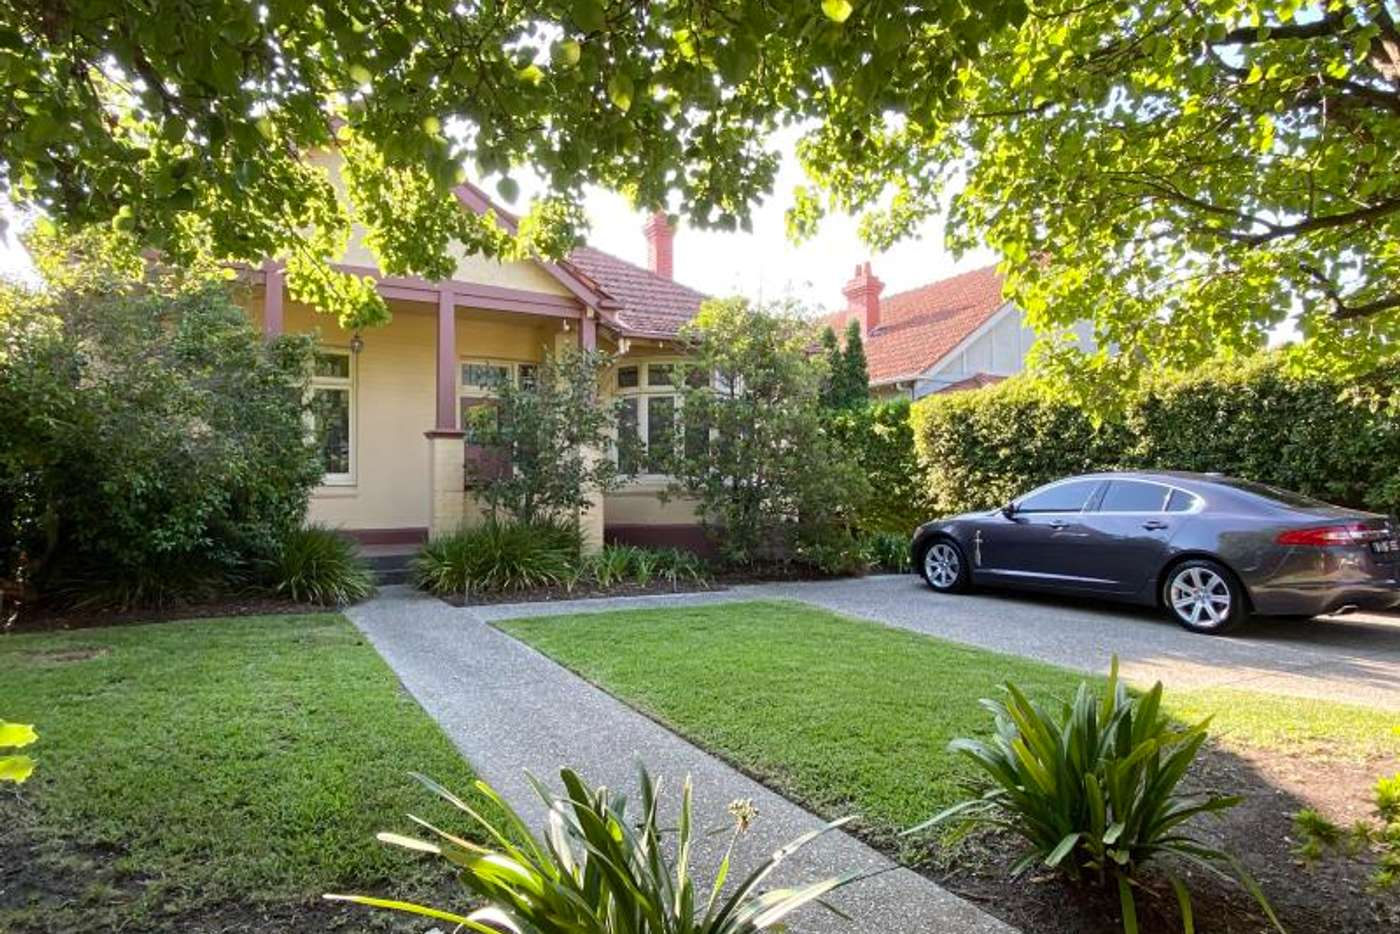 Main view of Homely house listing, 59 Asling Street, Brighton VIC 3186